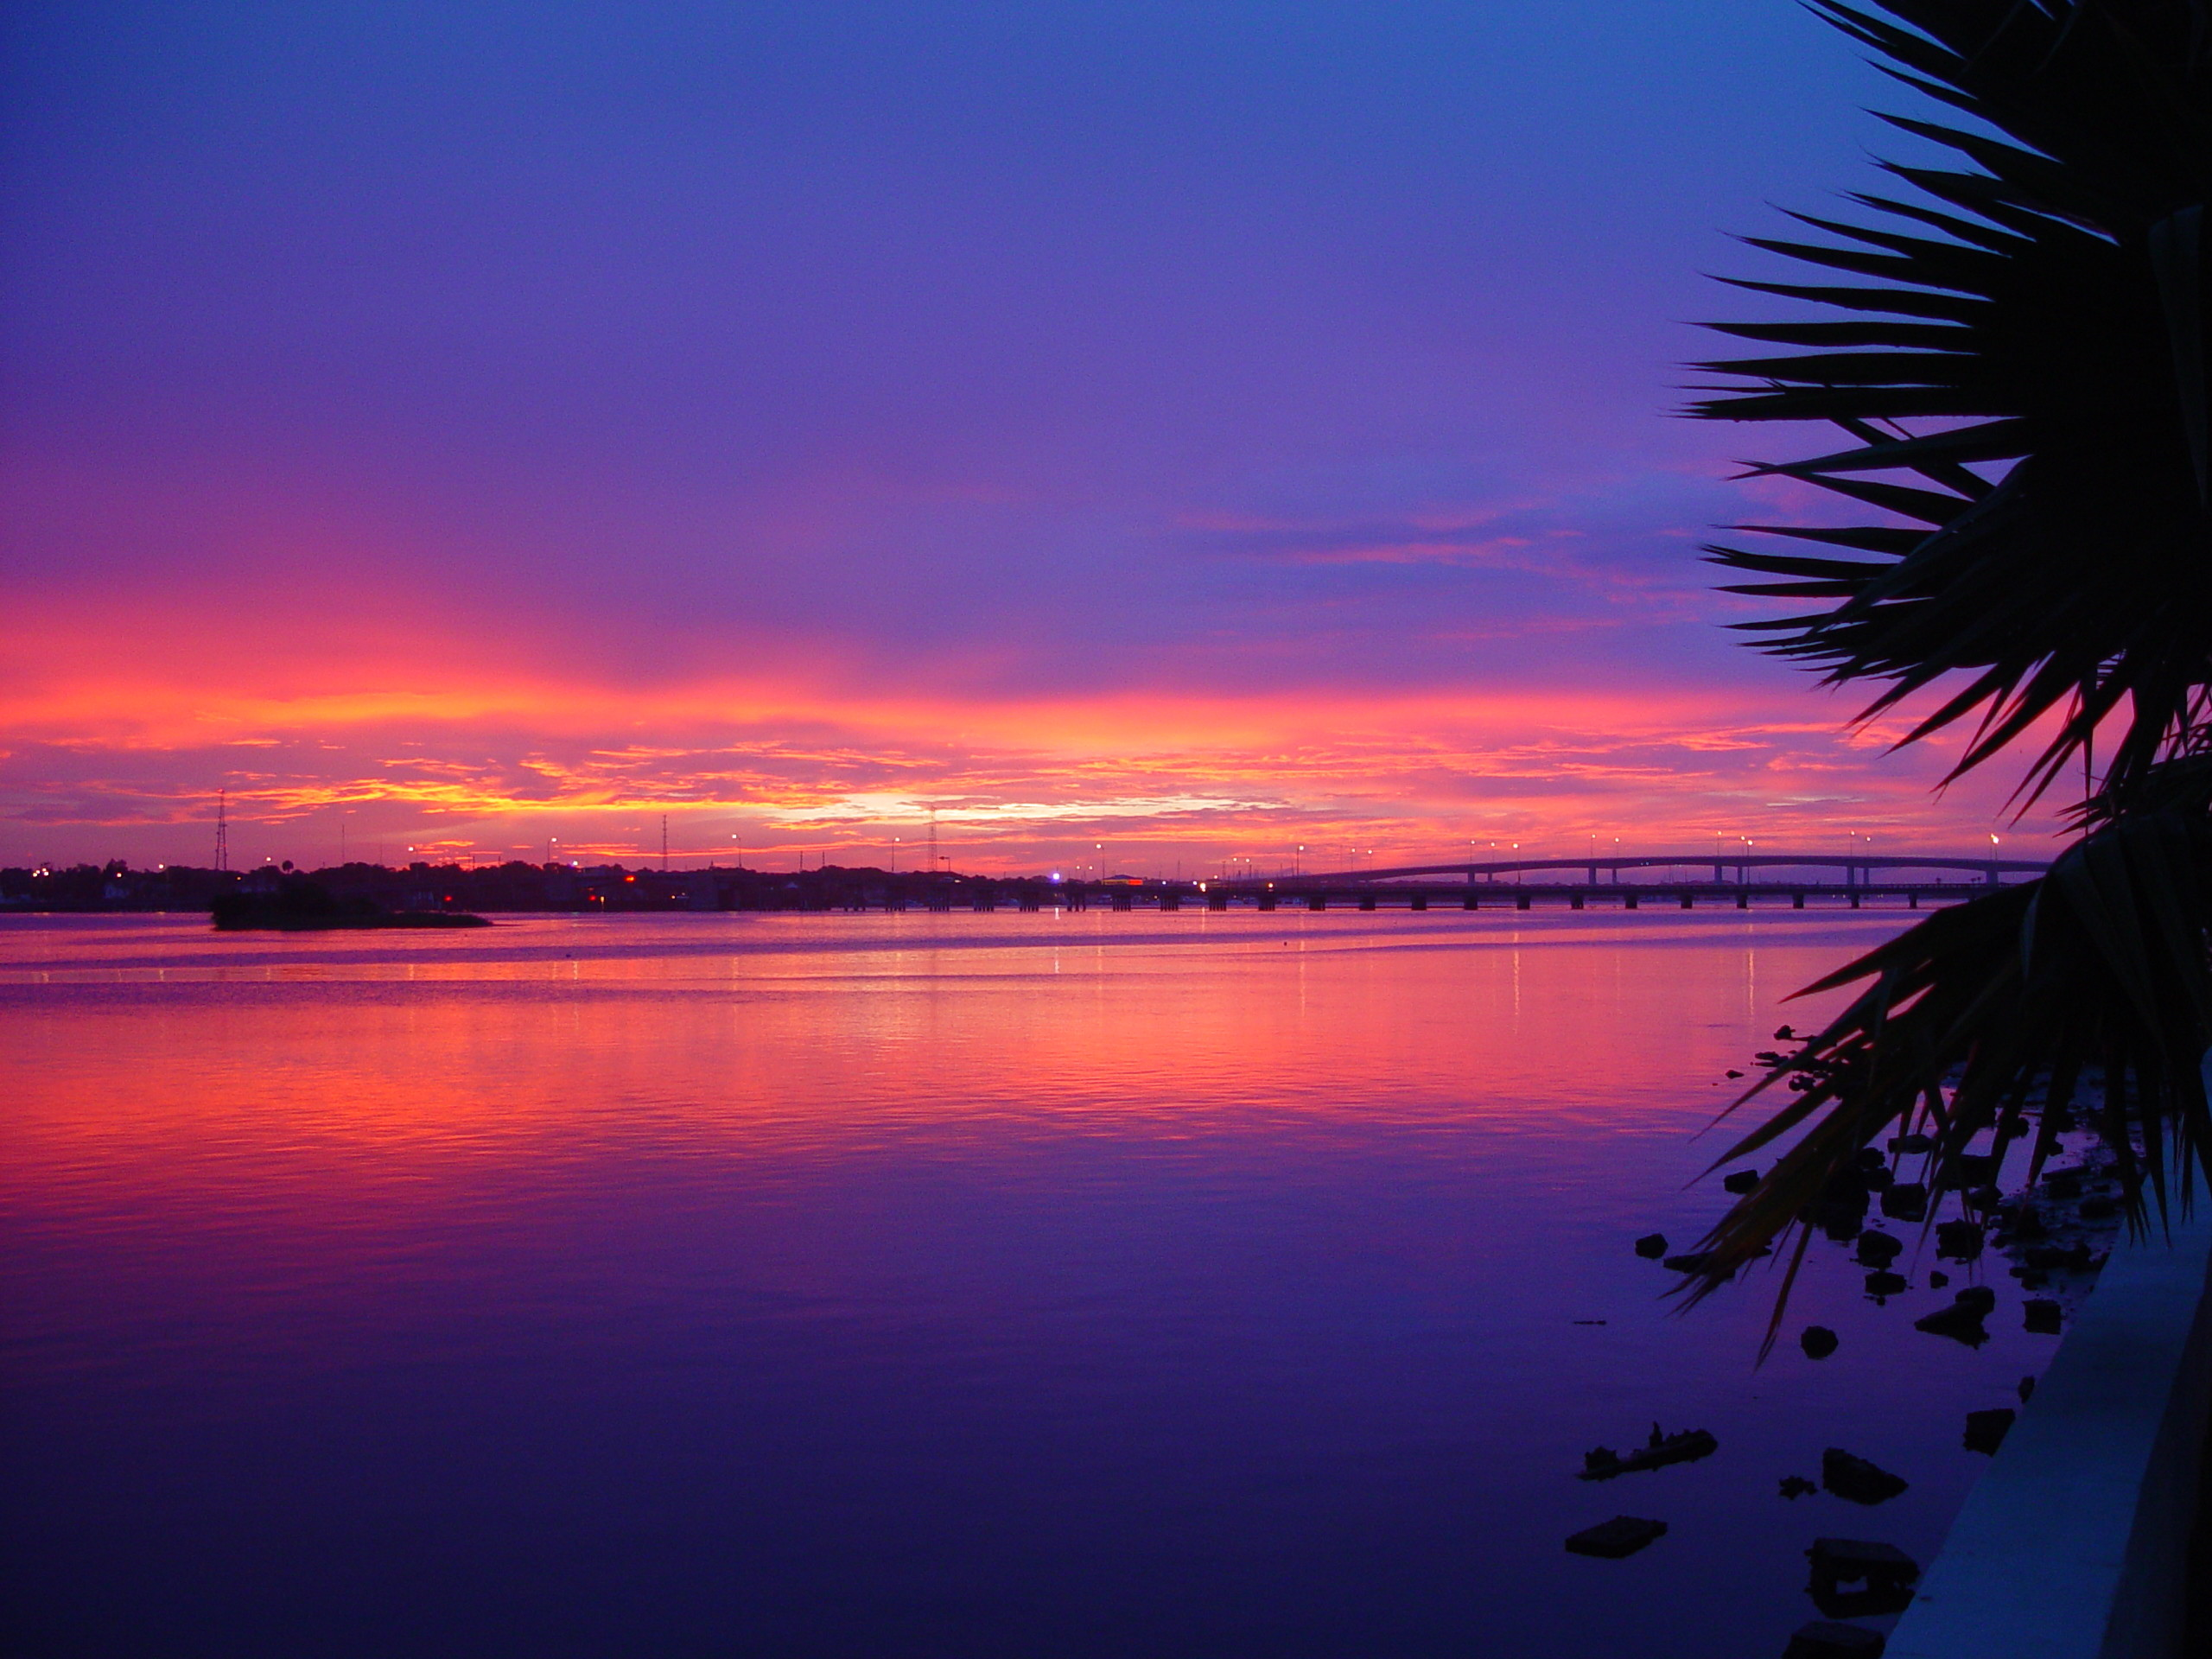 2560x1920 Photo of a beautiful sunset over the Halifax River with a blue, orange,  red, and purple sky in Daytona Beach, FL among the palm trees.